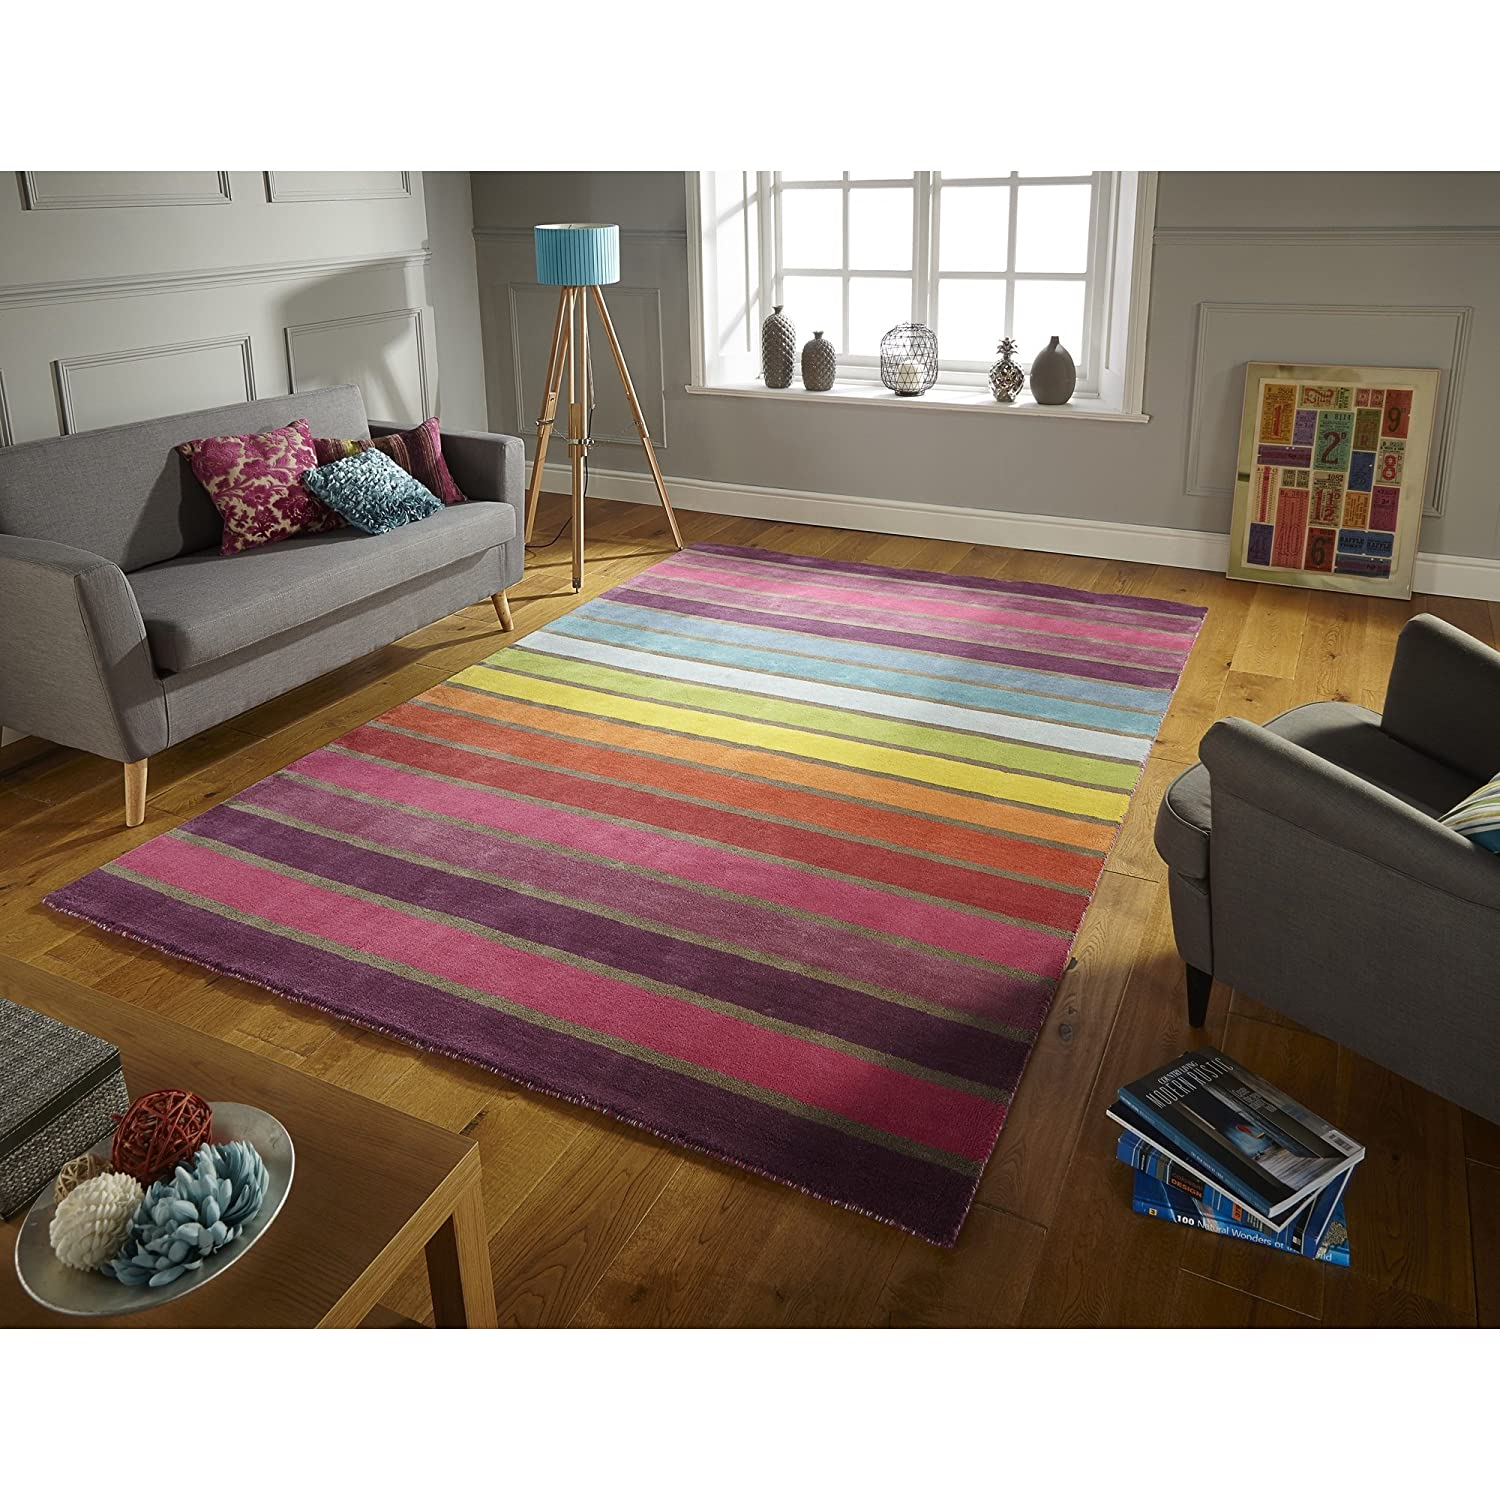 flair rugs illusion candy stripe  wool hand tufted rug multi  - flair rugs illusion candy stripe  wool hand tufted rug multi  x cm amazoncouk kitchen  home